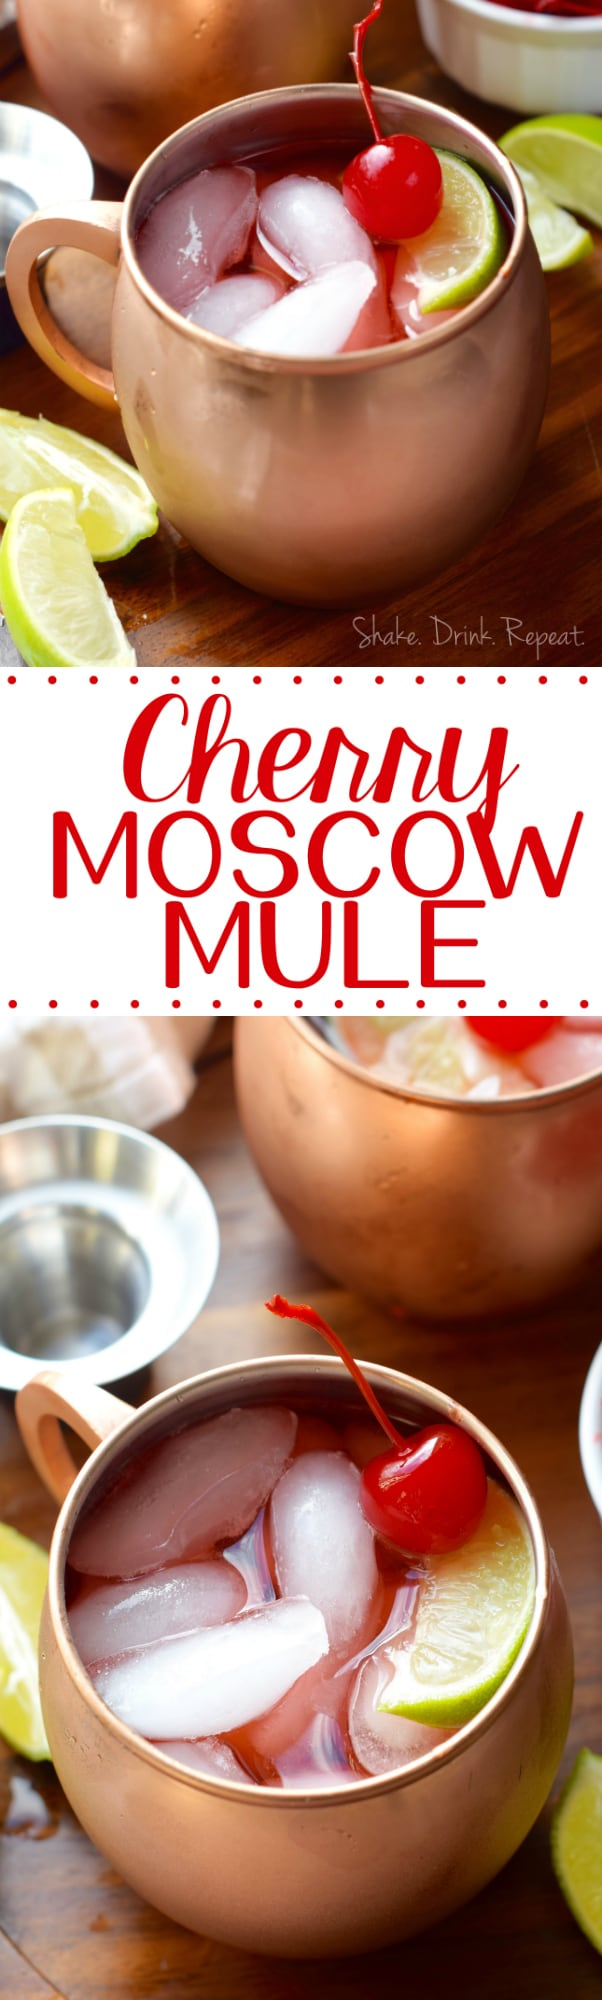 This Cherry Moscow Mule Recipe is such a delicious fun twist on the classic.  Made with easy to find ingredients, vodka, grenadine, ginger beer, and lime juice, this will be your new favorite party cocktail.